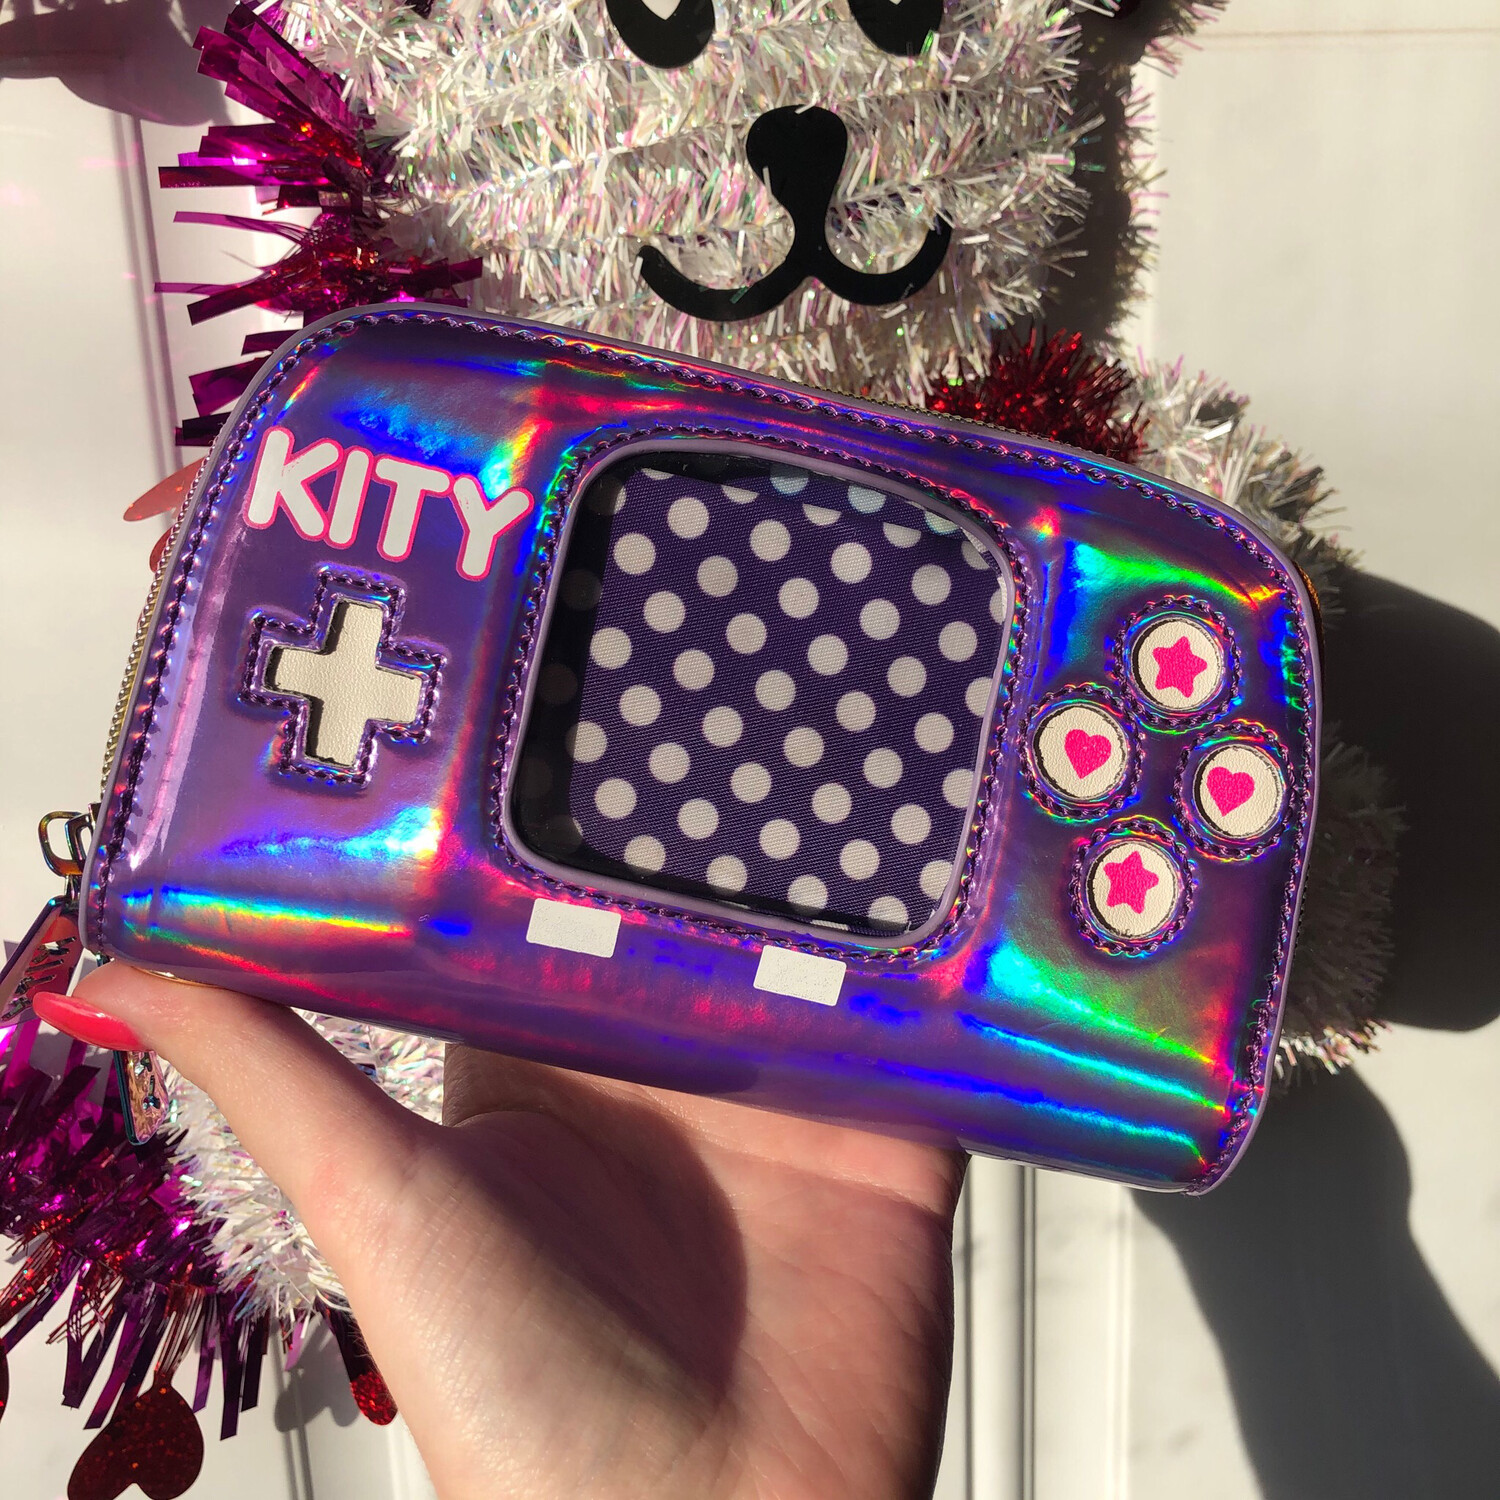 Kity Holographic ITA Clutch Wallet